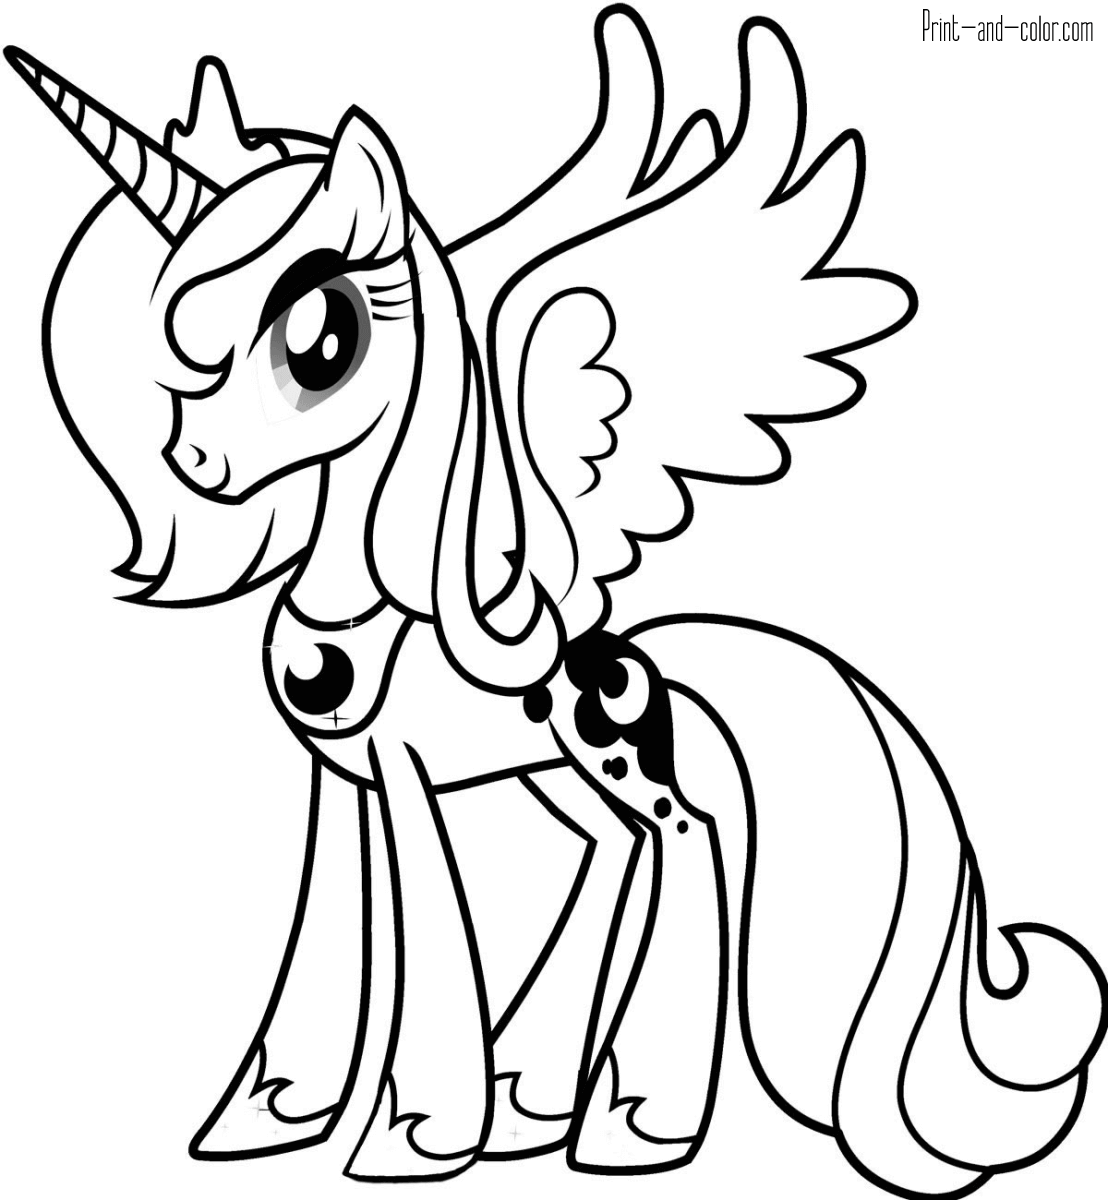 free my little pony coloring pages to print my little pony coloring pages print and colorcom my coloring print free pony little pages to